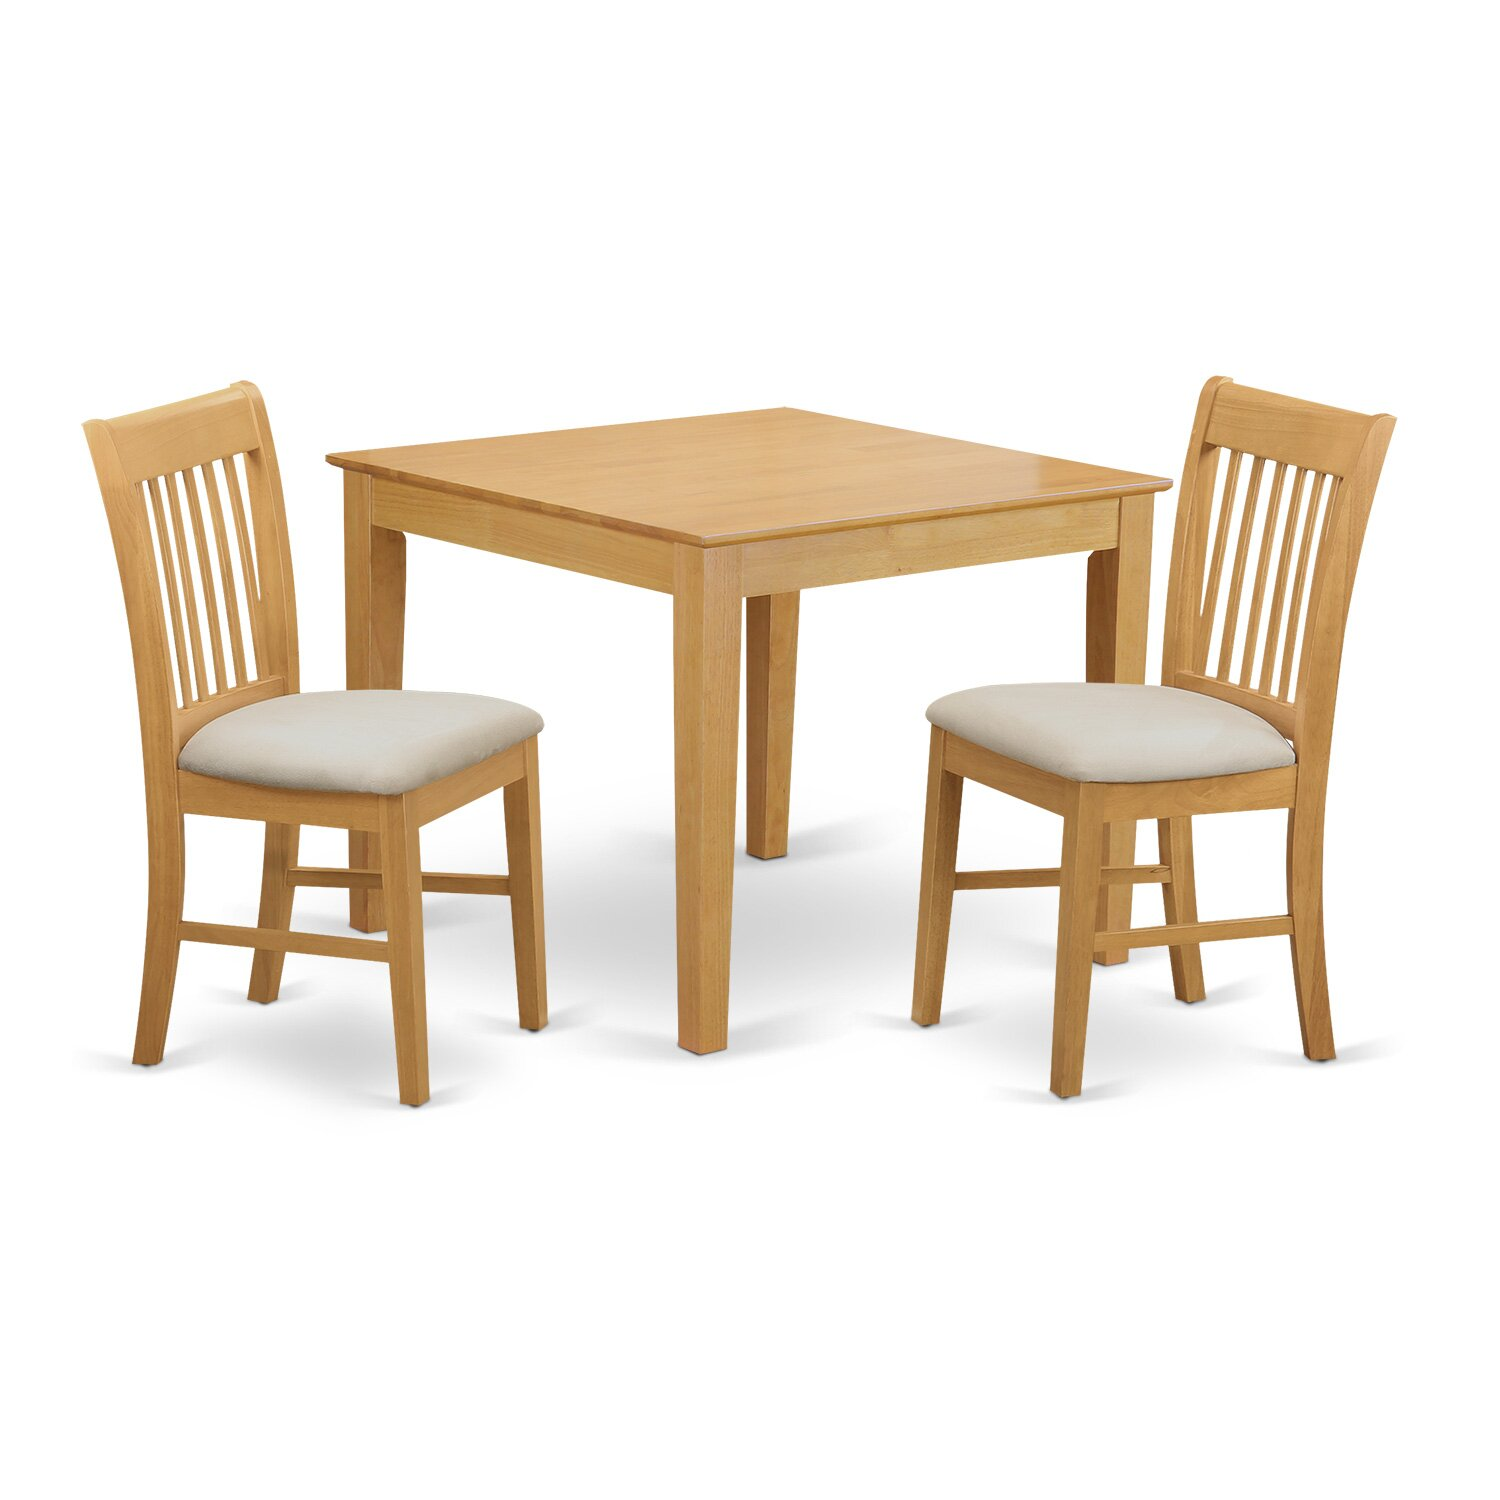 East west oxford 3 piece dining set reviews wayfair for 2 piece dining room set